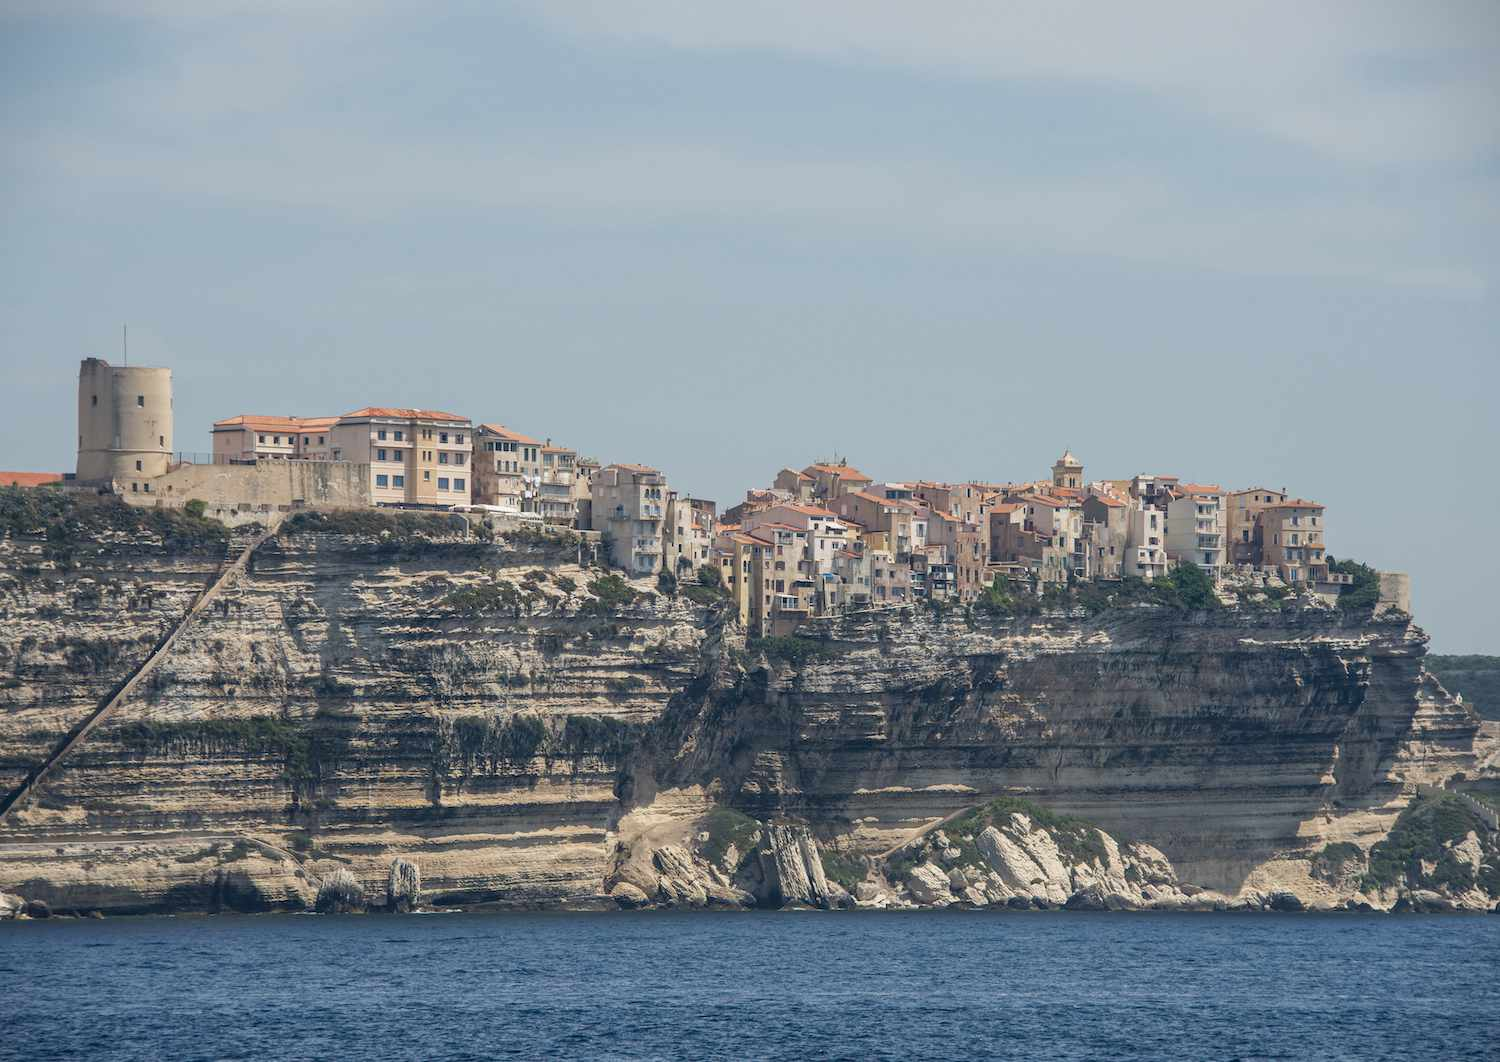 The ancient town of Bonifacio sits on the cliffs over the water